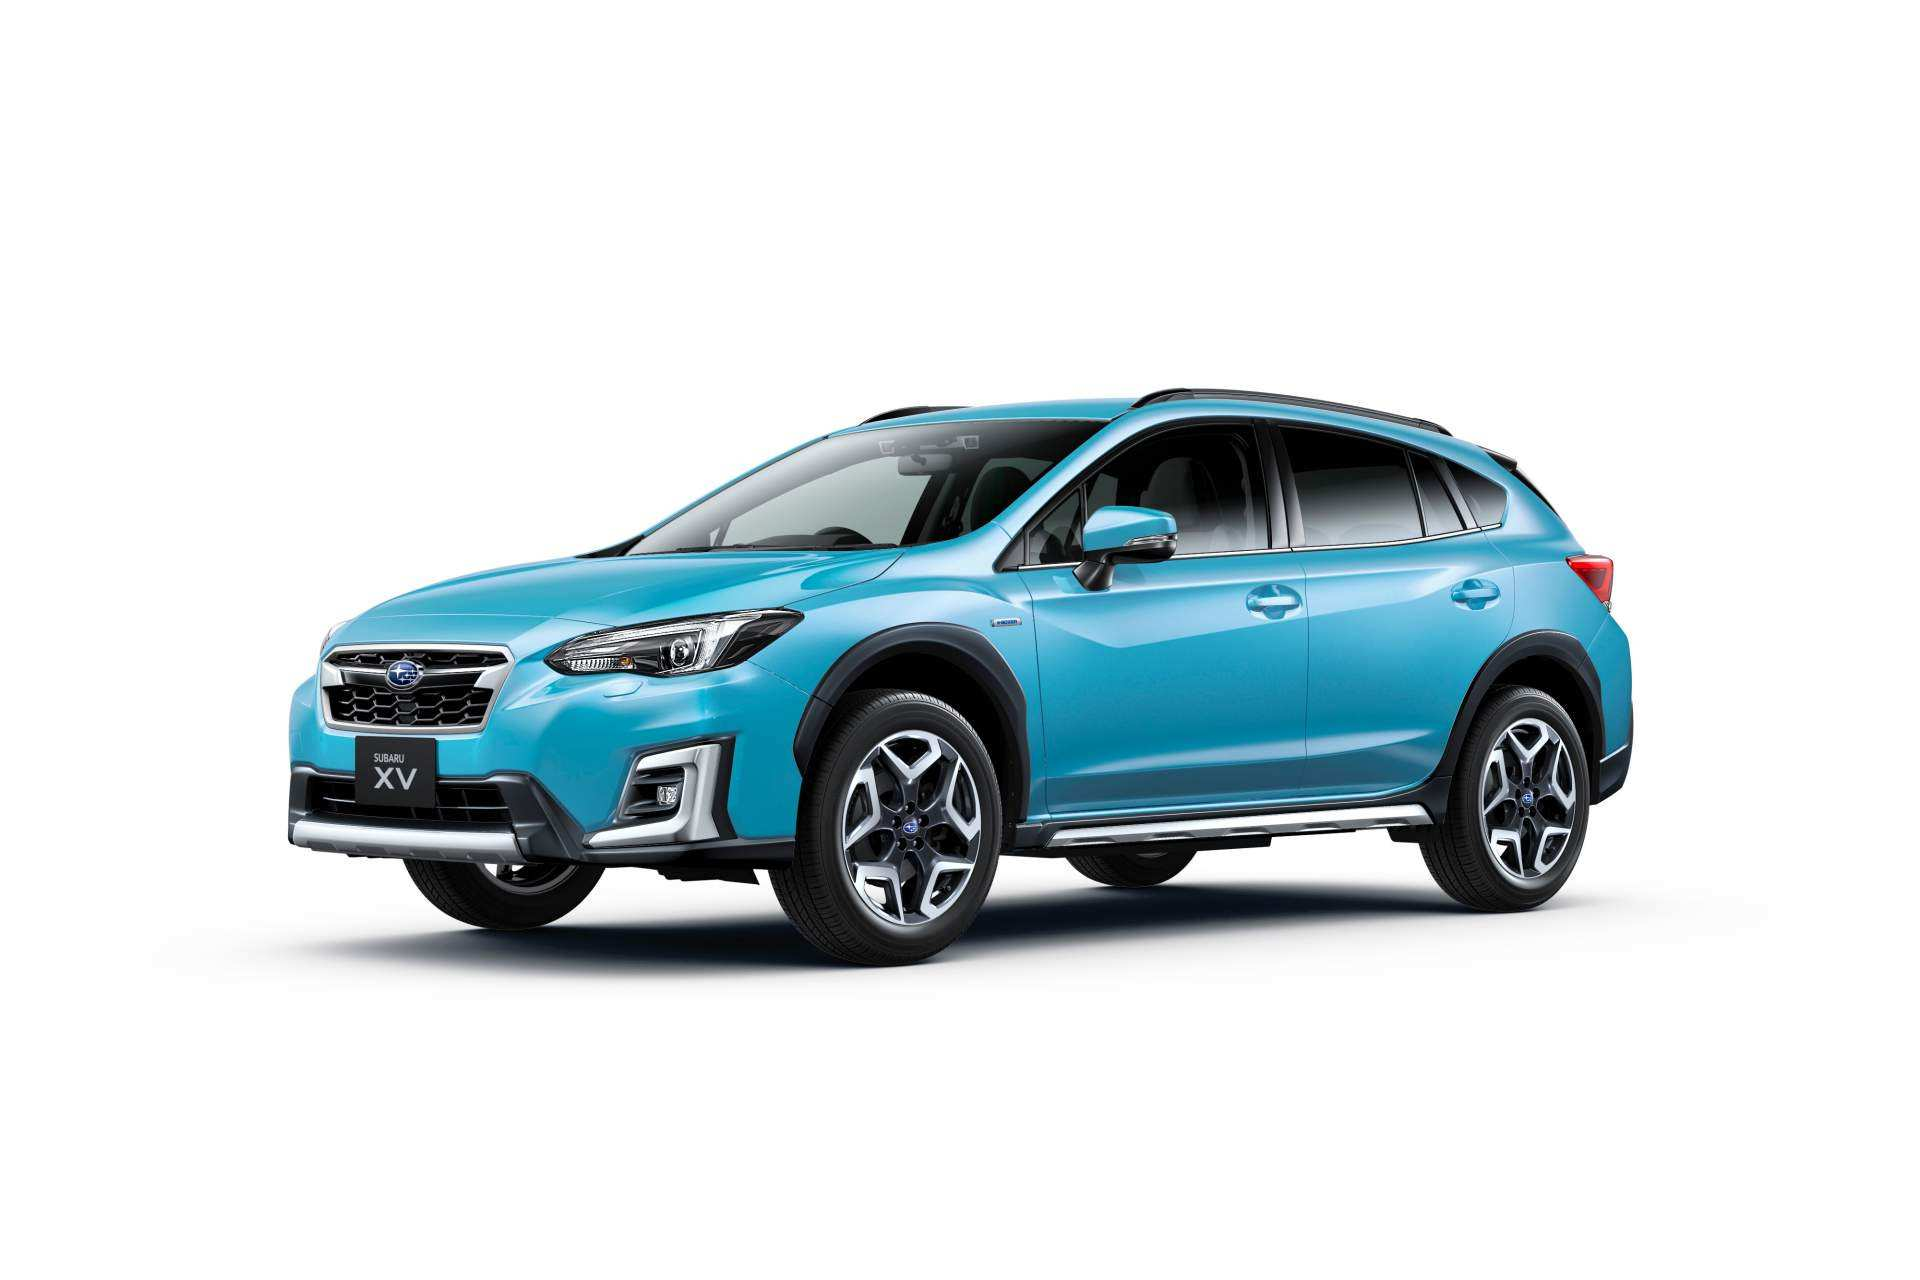 21 A Subaru Xv 2019 Price And Release Date